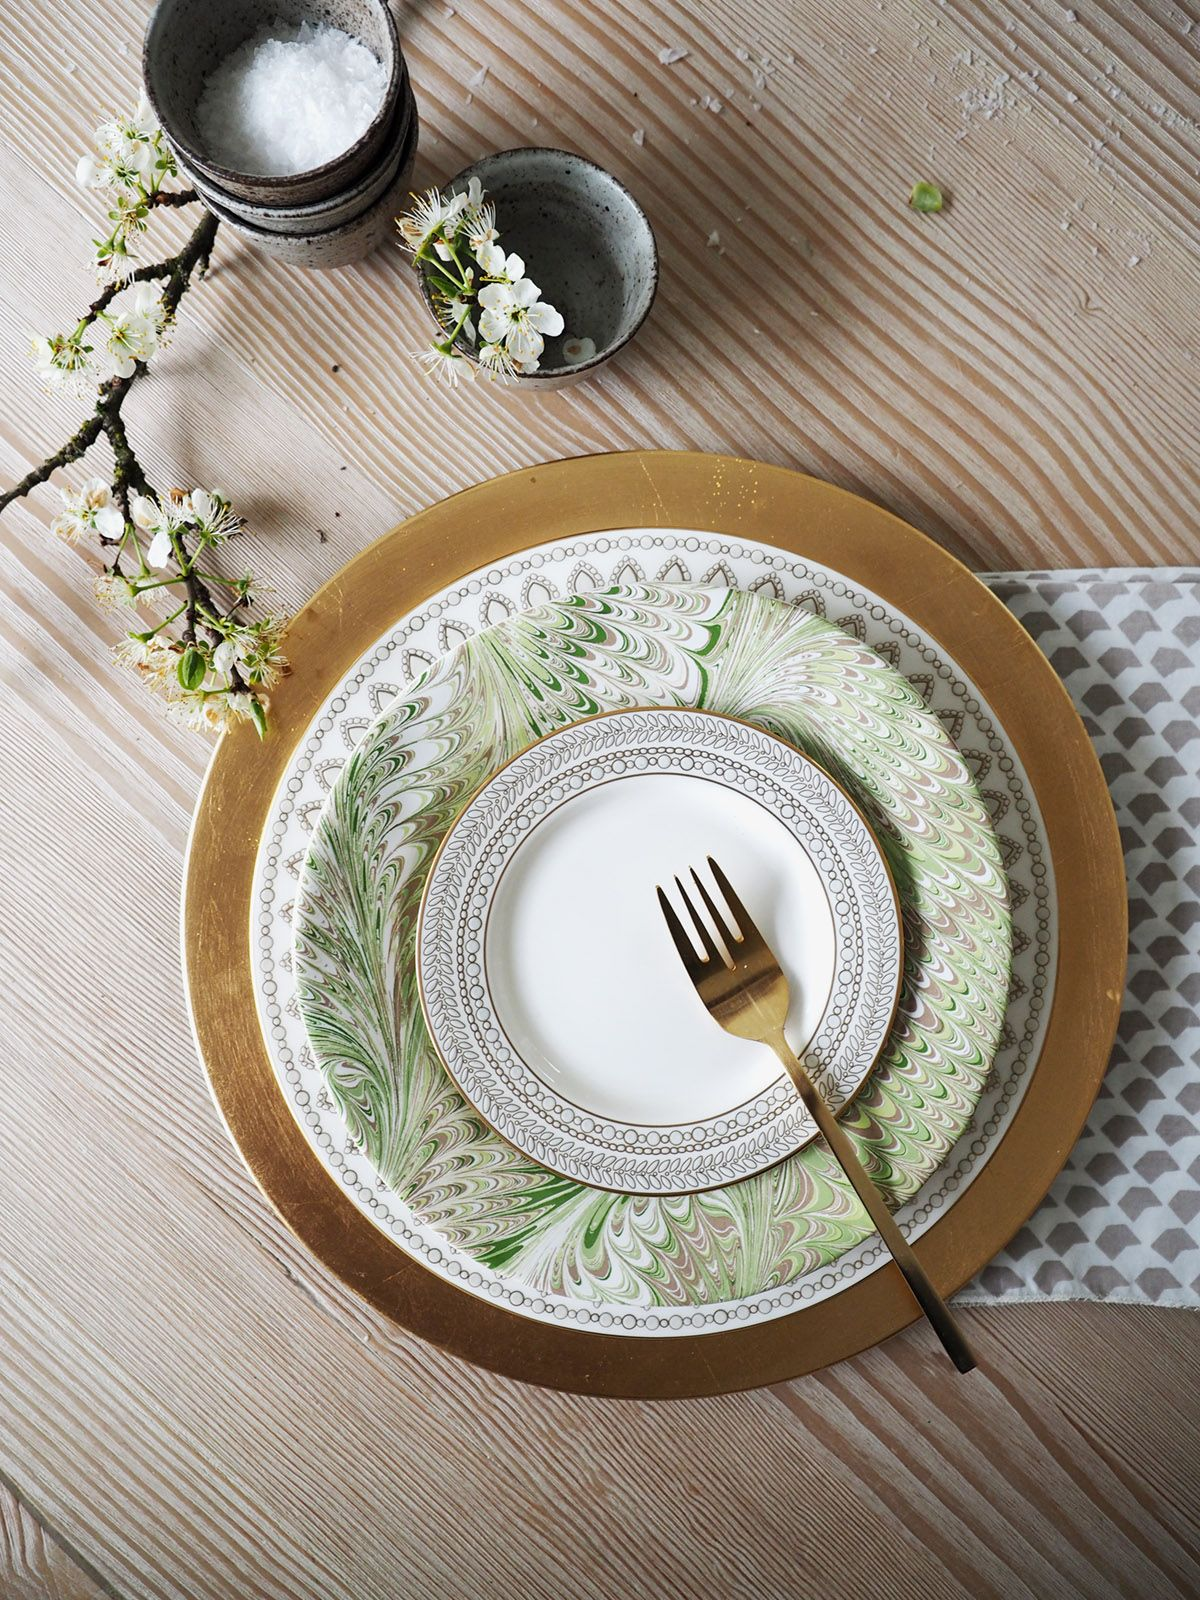 How To Mix \u0027n Match China for a Modern Registry - coco kelley & mixing and matching china for the perfect modern registry | coco ...